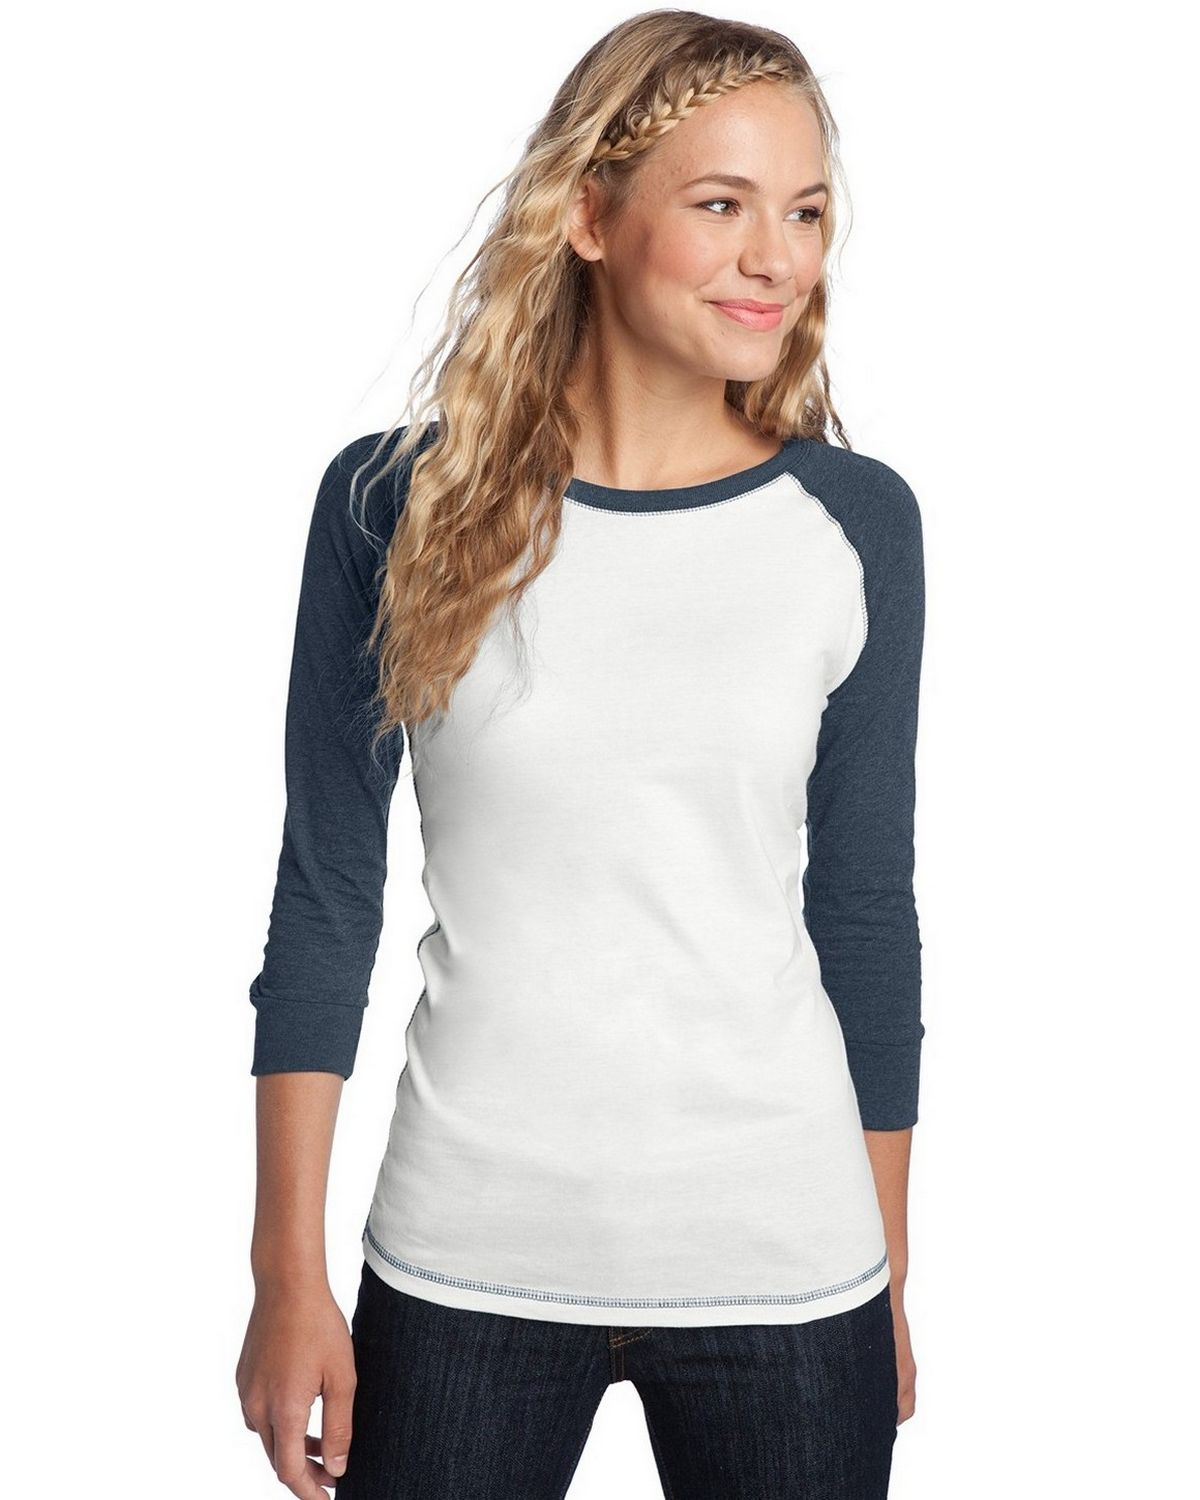 District DT226 Juniors Perfect Weight Raglan Tee - White/Heathered Dark Navy - XS DT226